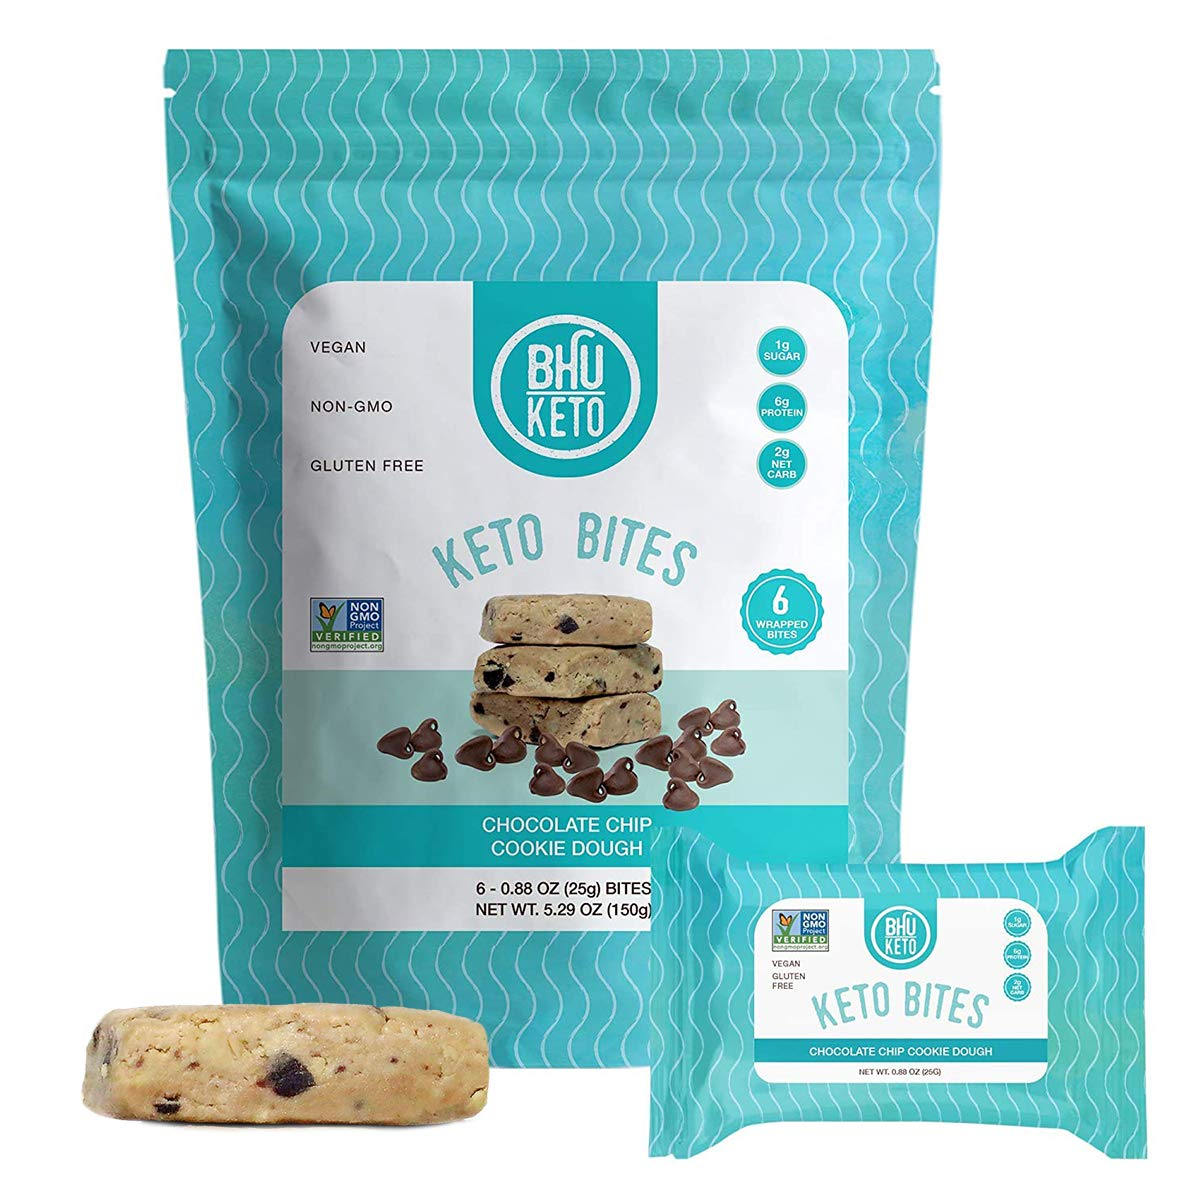 BHU Keto Bites - Chocolate Chip Cookie Dough, 6 Individually Wrapped Protein Snacks for On The Go - Made Fresh Daily, Natural & Organic Ingredients, Low Carb, Vegan, Gluten-Free & Non-GMO